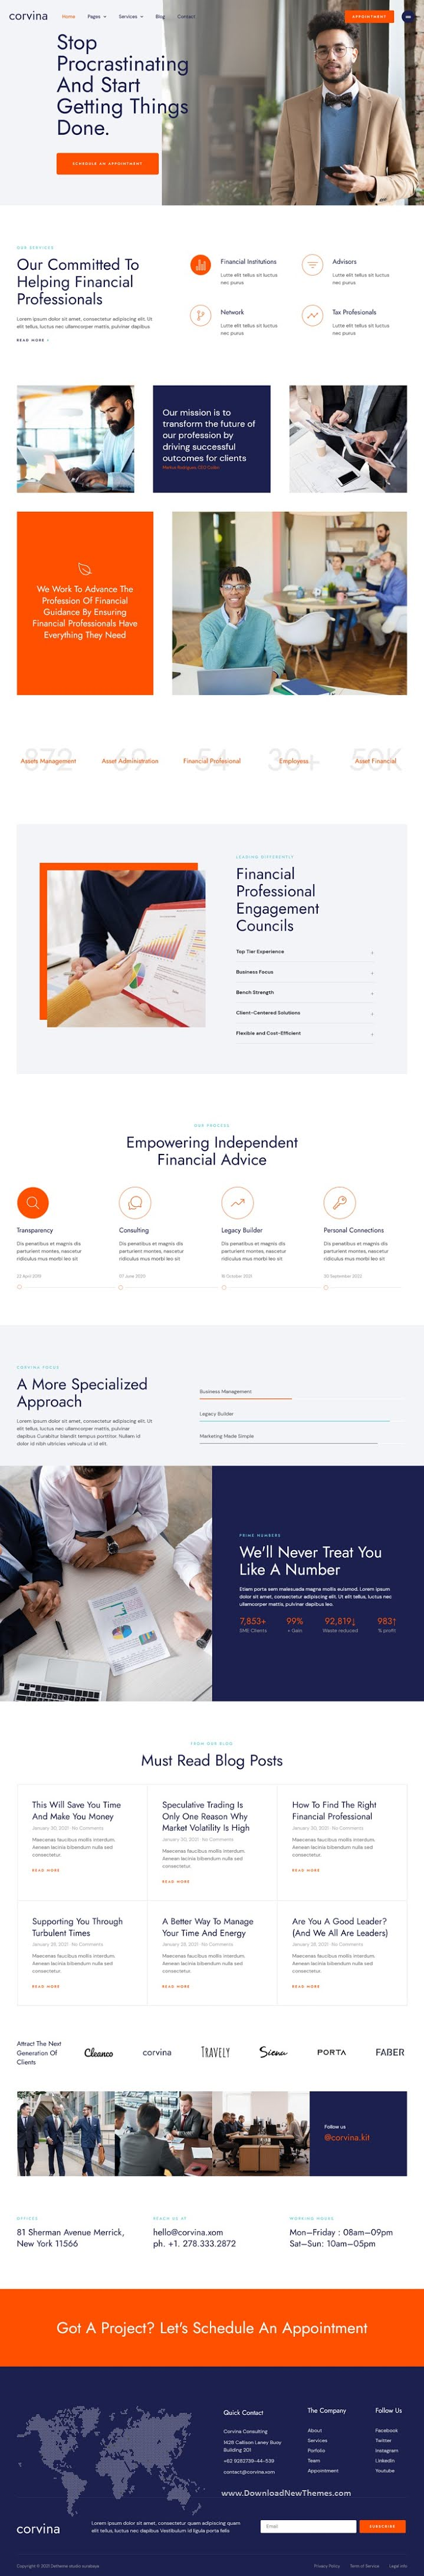 Business Coaching and Consulting Service Elementor Template Kit